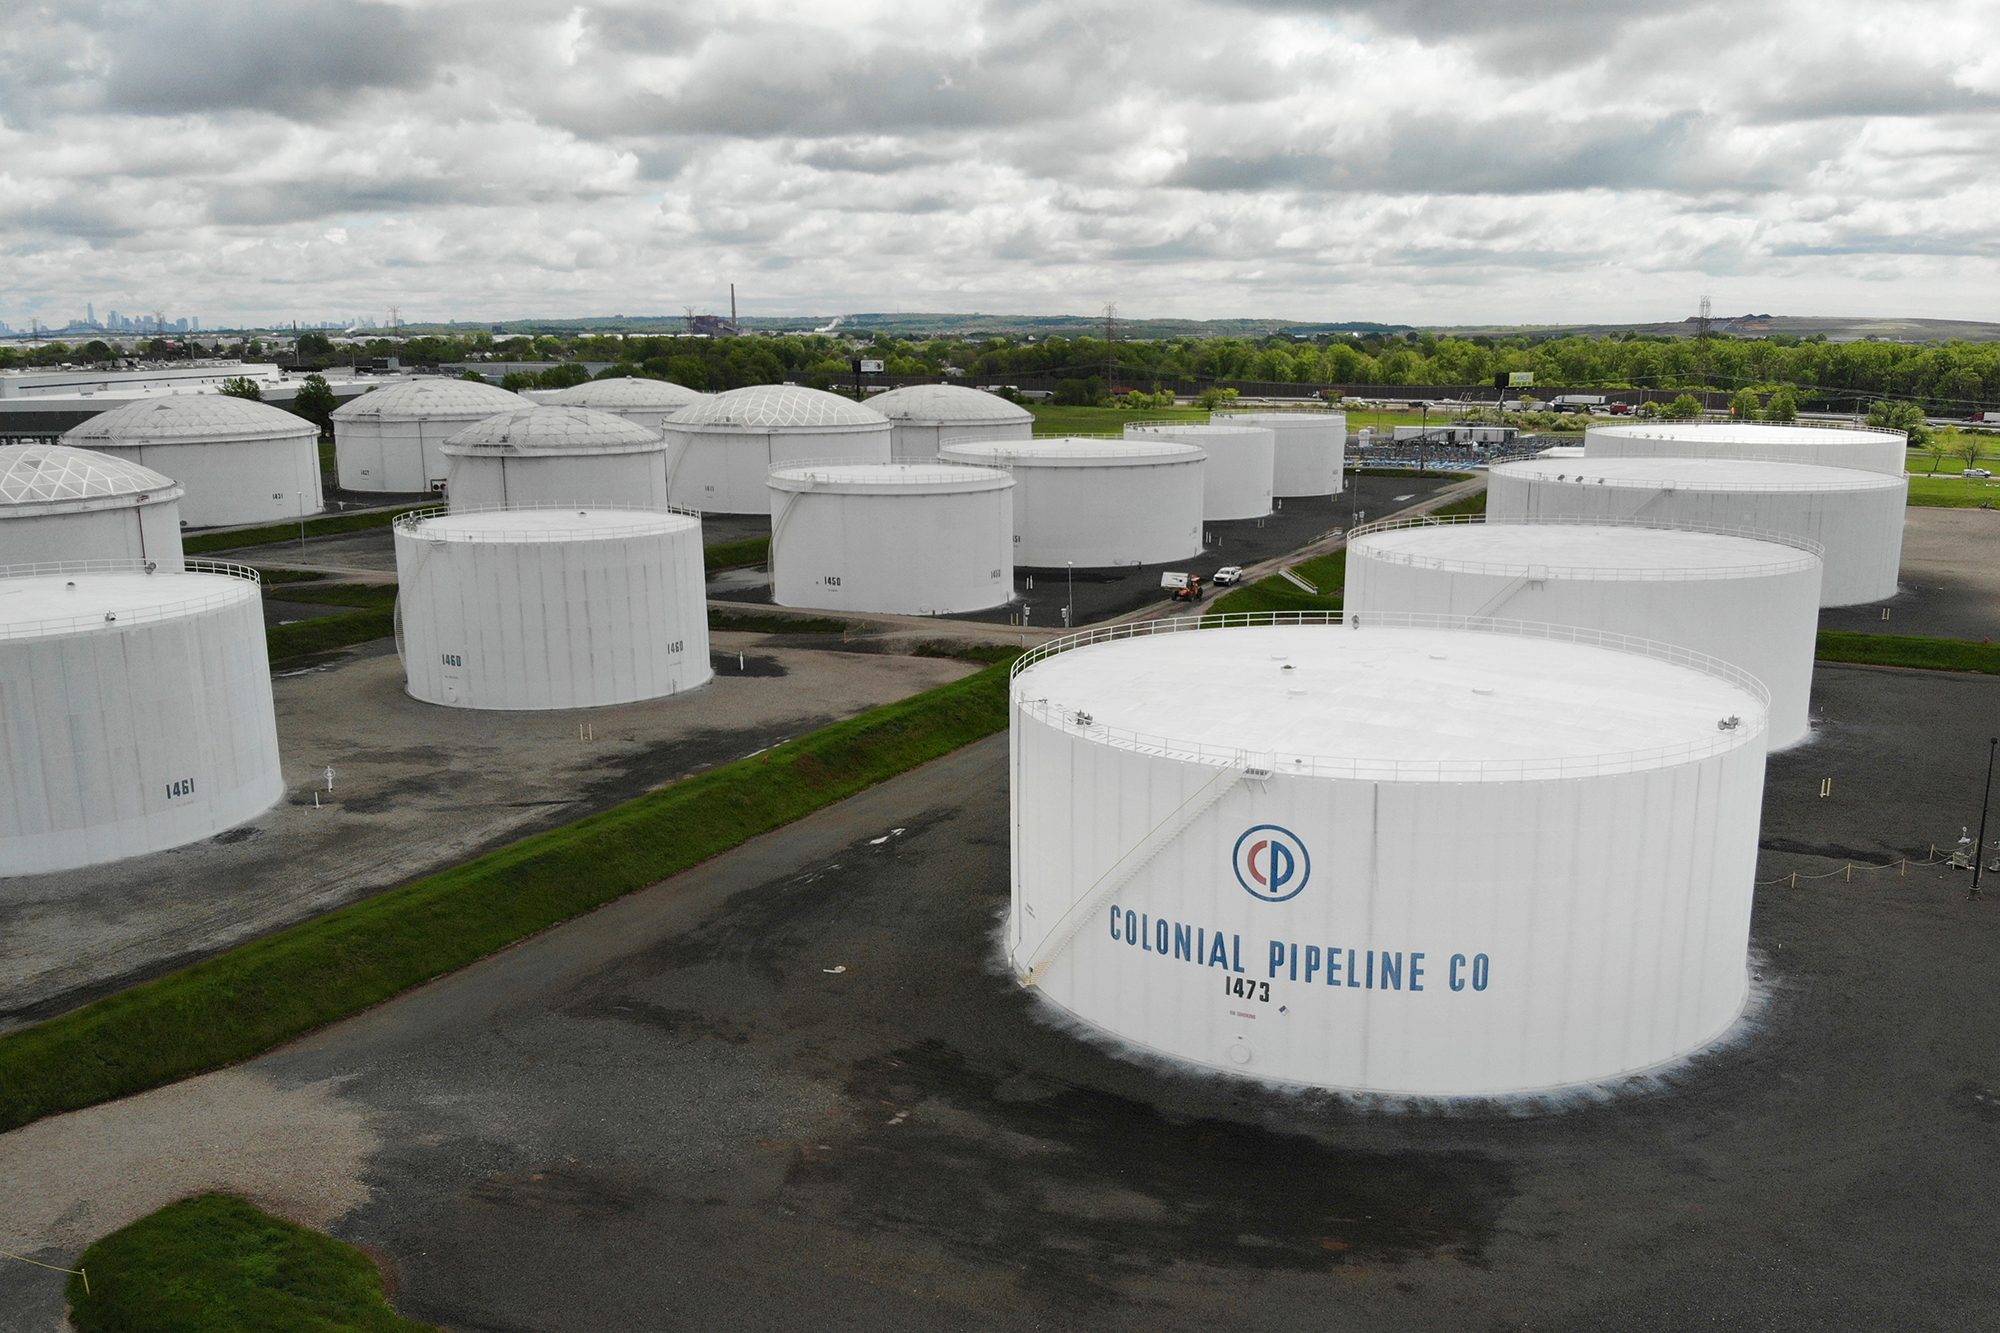 Colonial Pipeline storage tanks are seen in Woodbridge, New Jersey, on Monday, May 10.